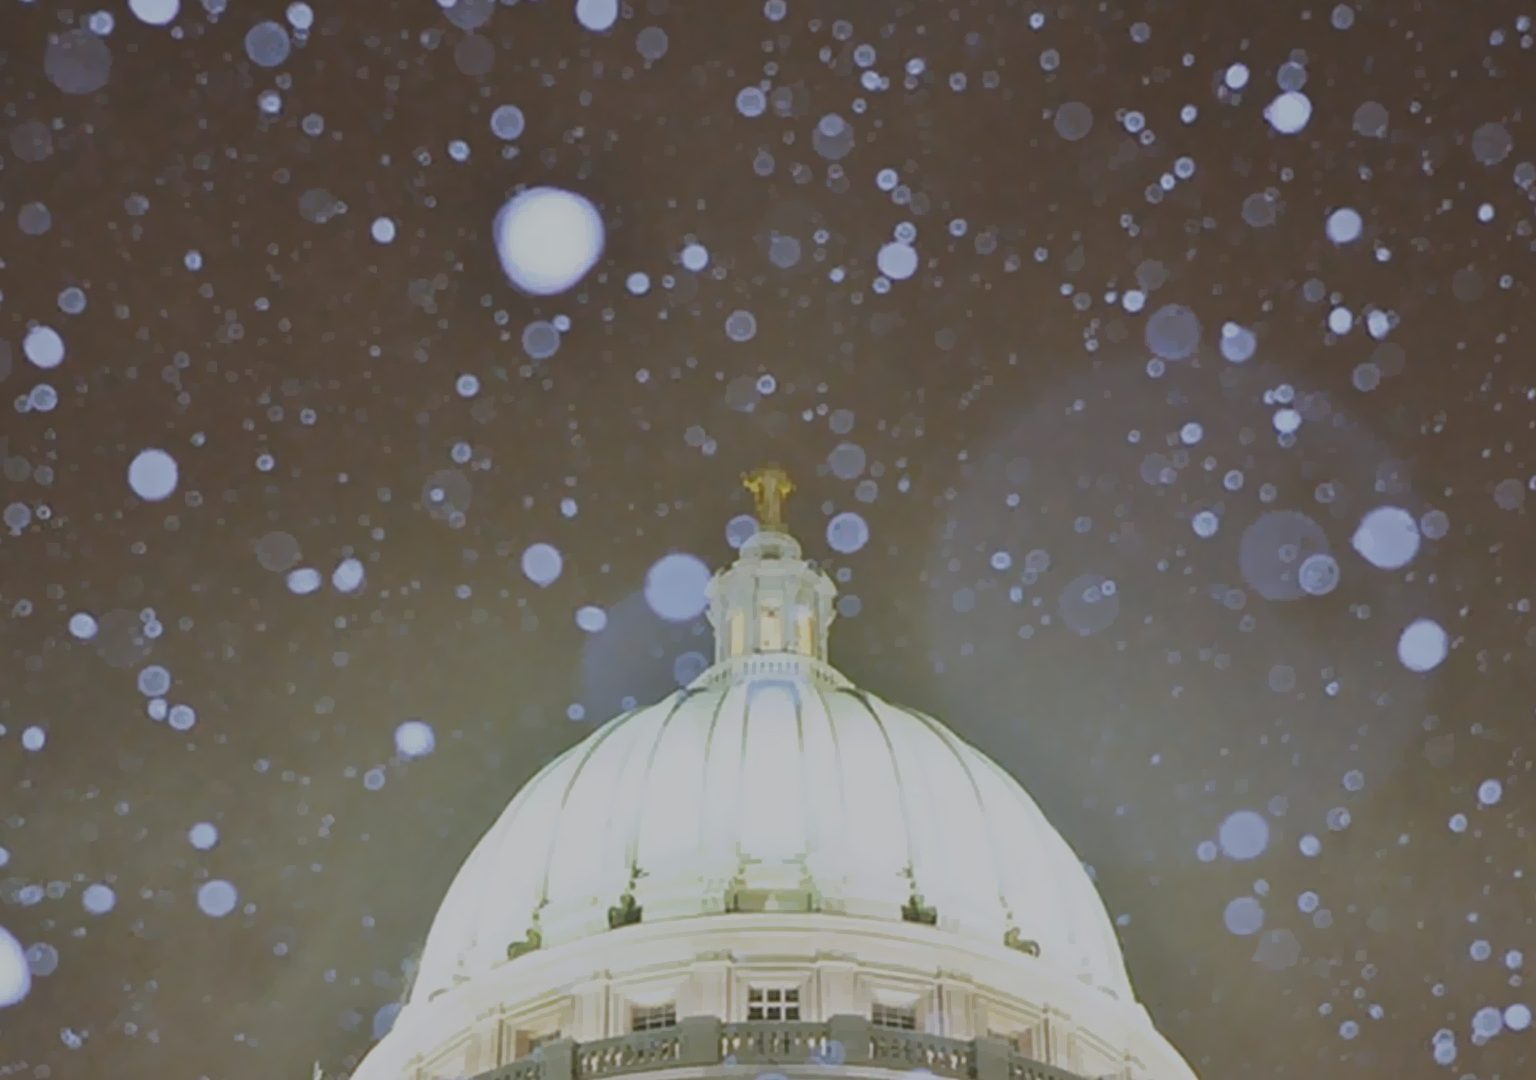 Close-up of Wisconsin State Capitol dome at night with snow falling